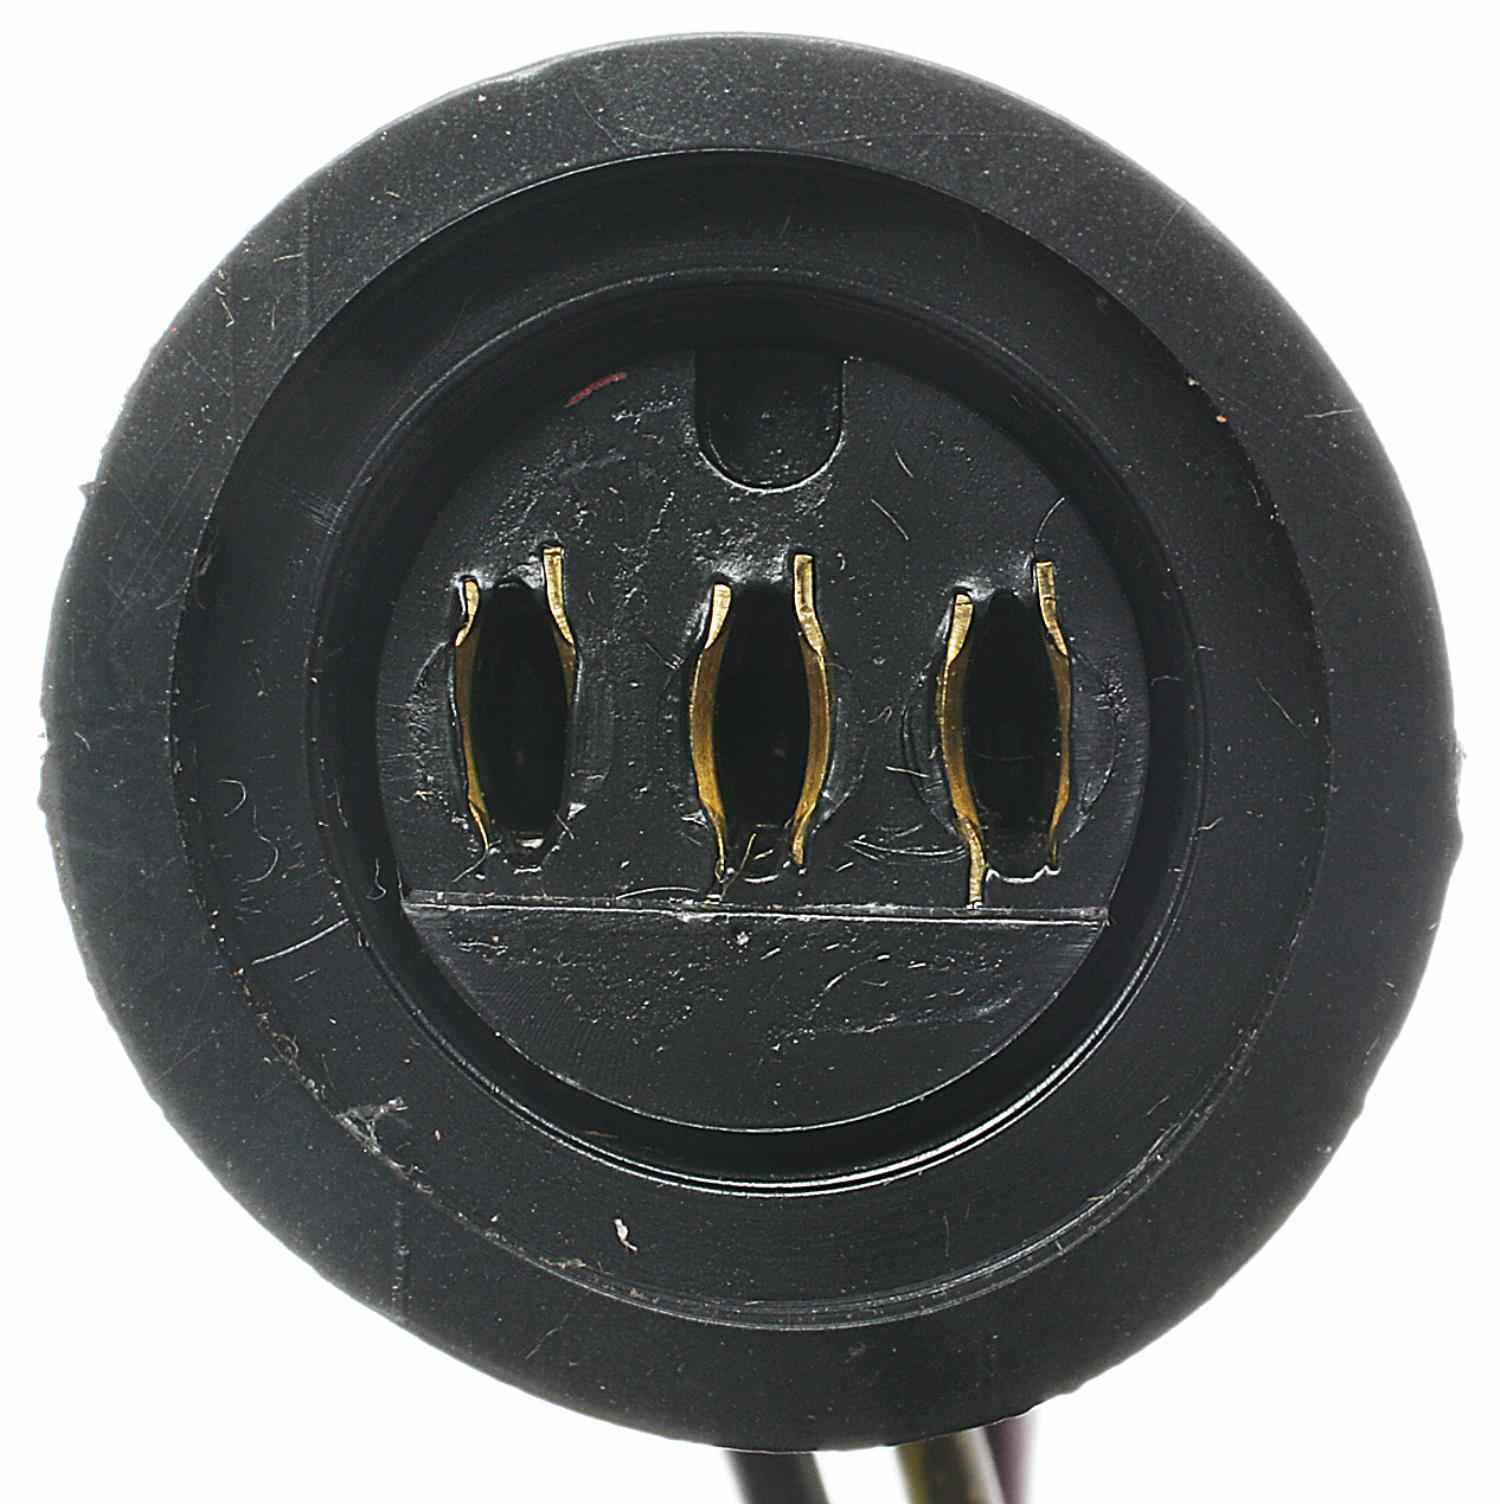 ACDELCO PROFESSIONAL - Neutral Safety Switch Connector - DCC PT2139